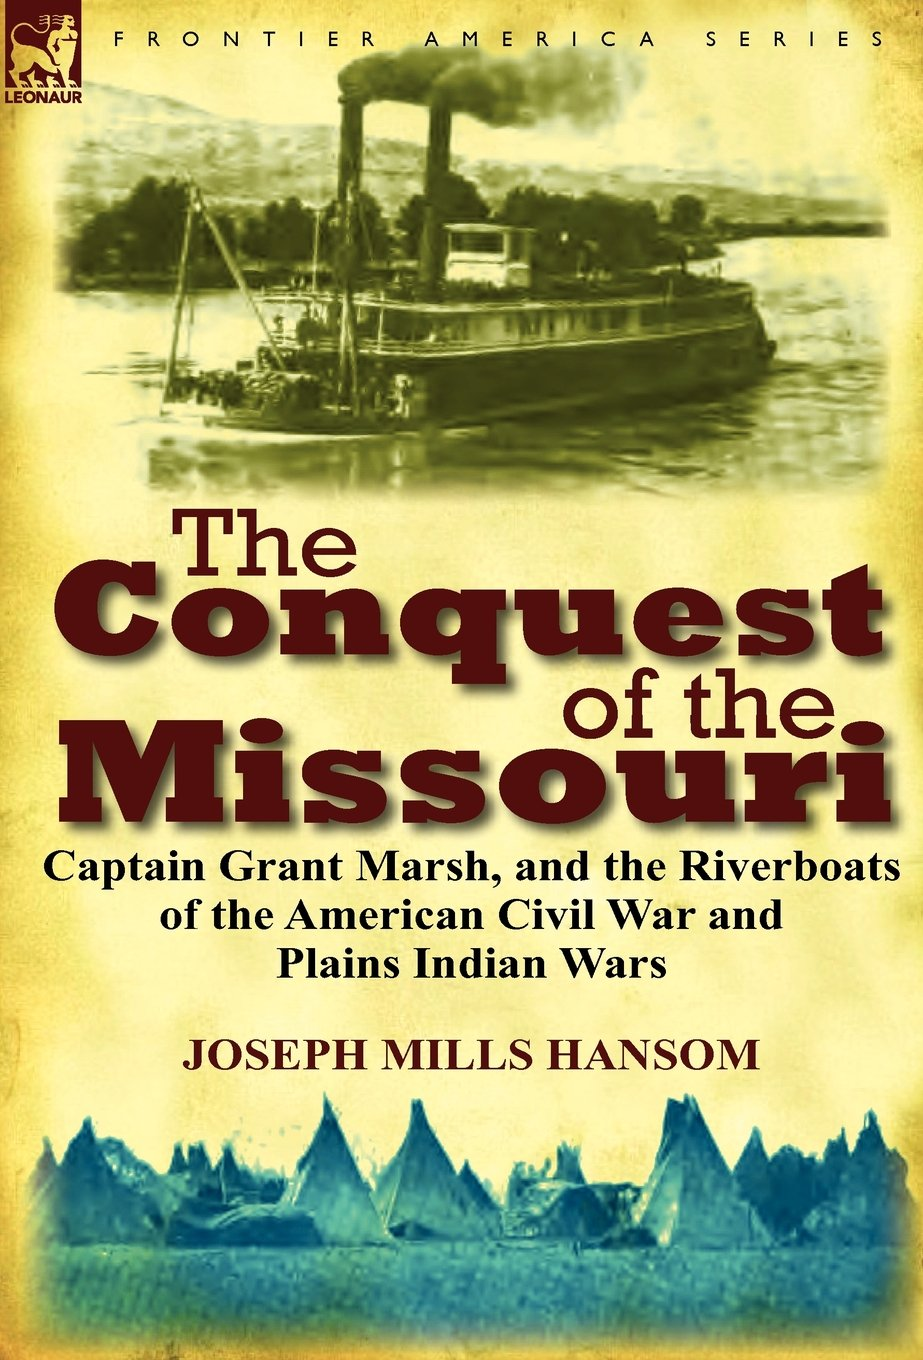 The Conquest of the Missouri: Captain Grant Marsh, and the Riverboats of the American Civil War and Plains Indian Wars